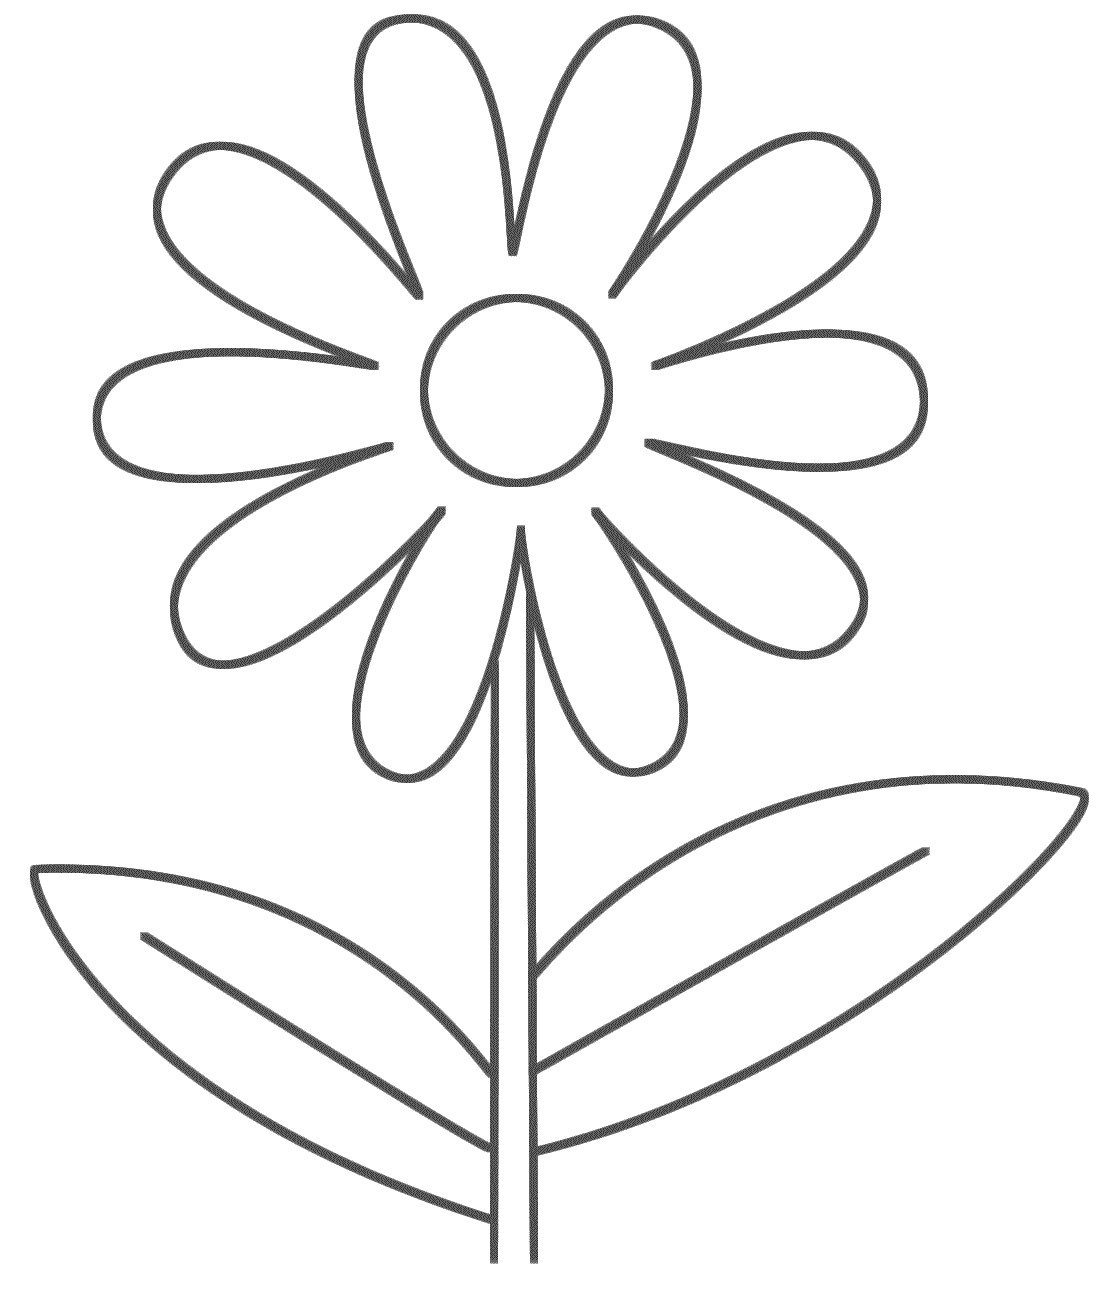 Daisies Flowers Drawing at GetDrawings.com | Free for personal use ...